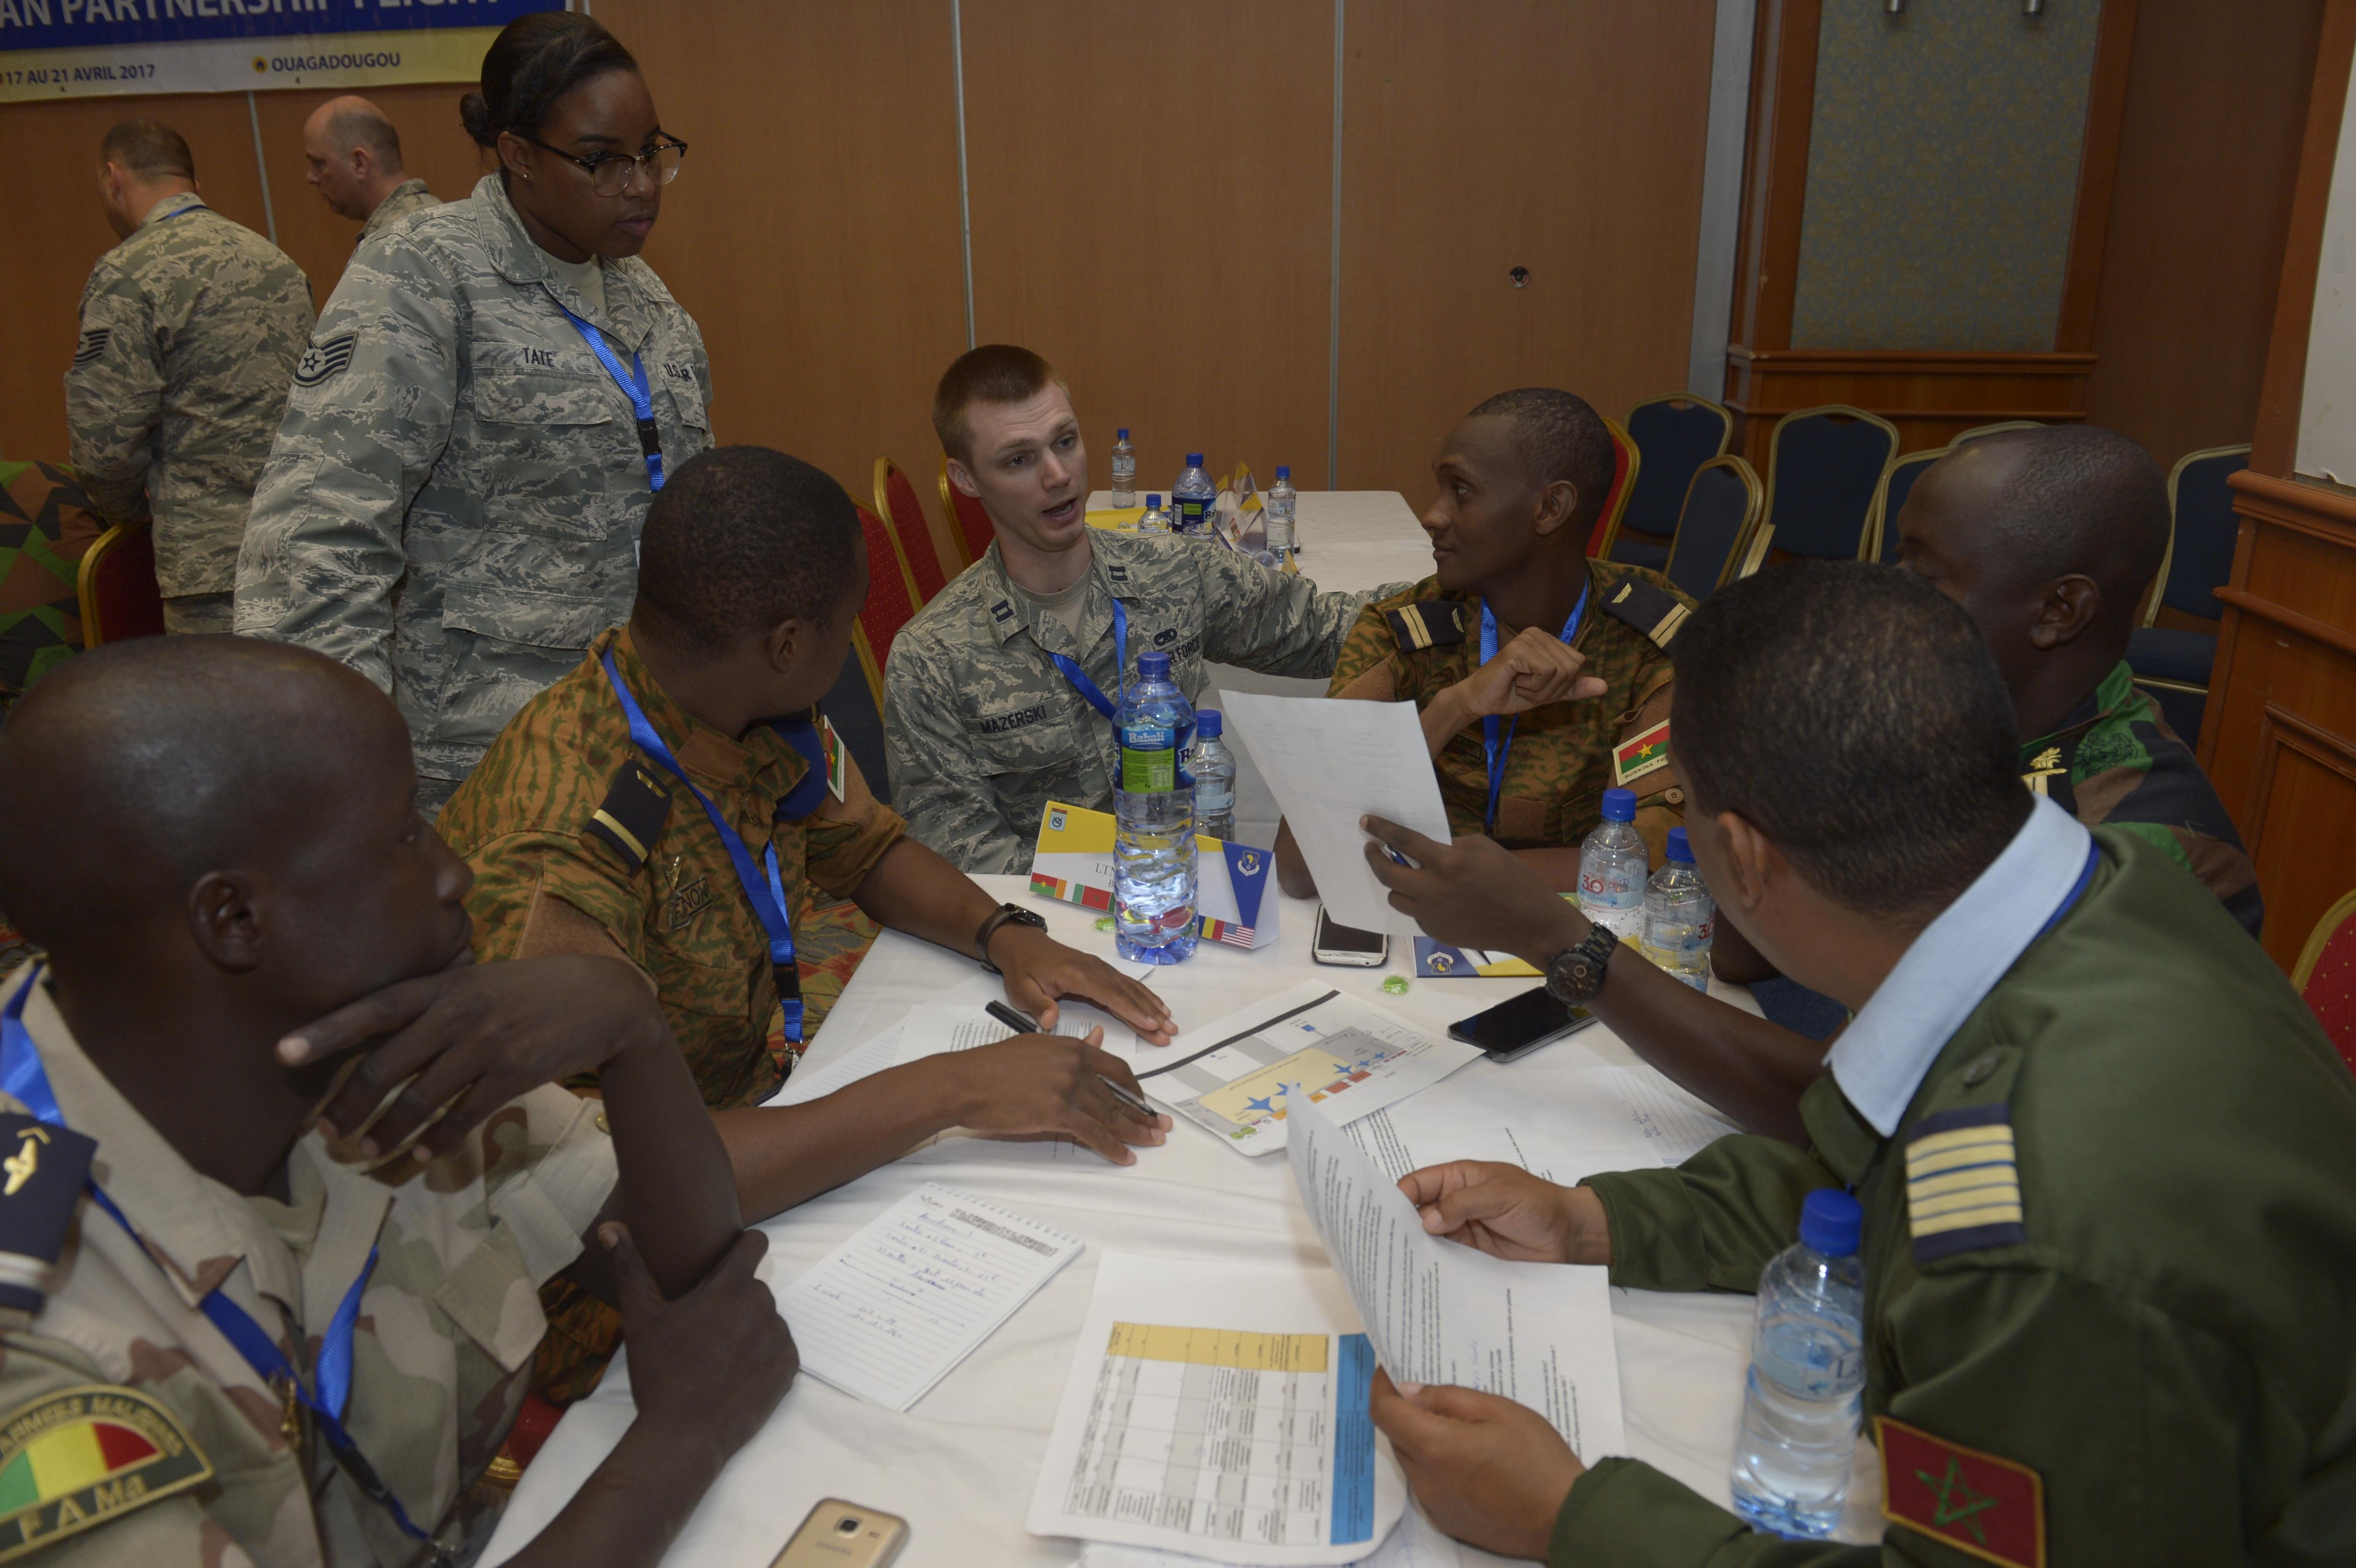 U.S. Air Force Capt. Ian Mazerski, 321st Contingency Response Squadron maintenance flight commander, talks with African Partnership Flight participants during a table top workshop in Ouagadougou, Burkina Faso, April 20, 2017. The intent of APF is to build strong transparent partnerships that enhance regional stability and security through formal alliances, partnerships and simple exchanges of information. (U.S. Air Force photo by Staff Sgt. Jonathan Snyder)